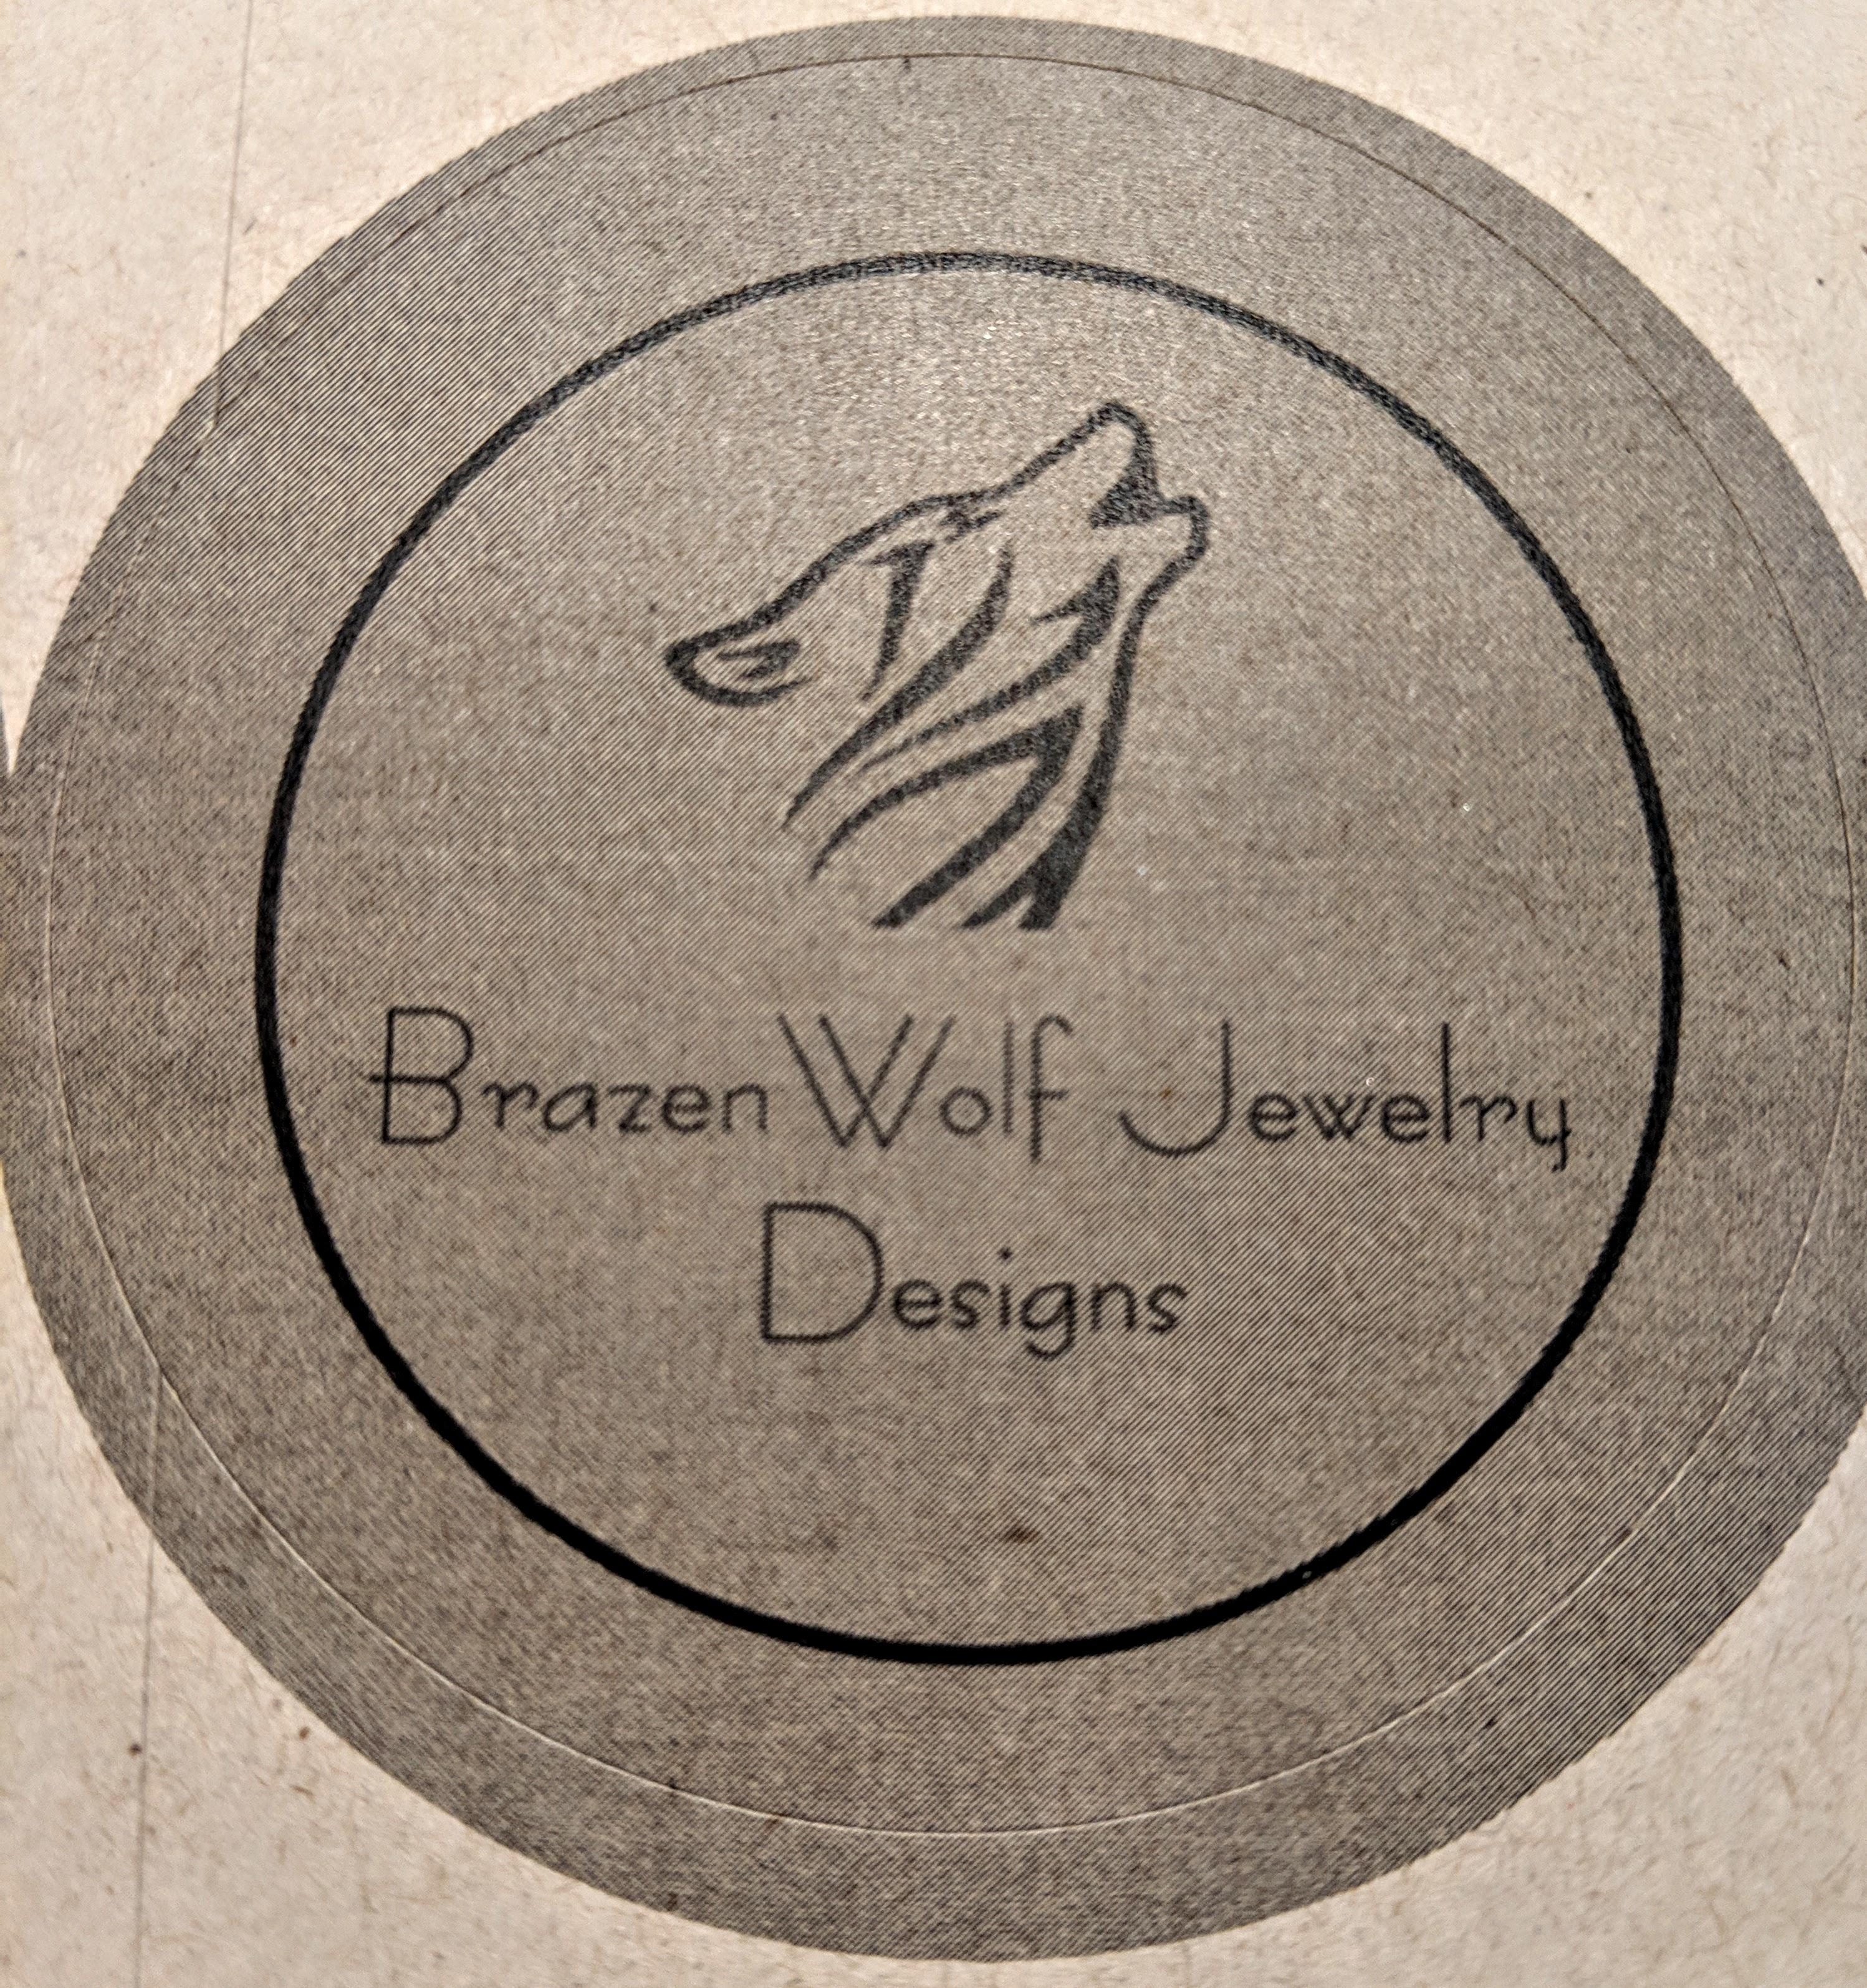 BrazenWolf Jewelry Designs